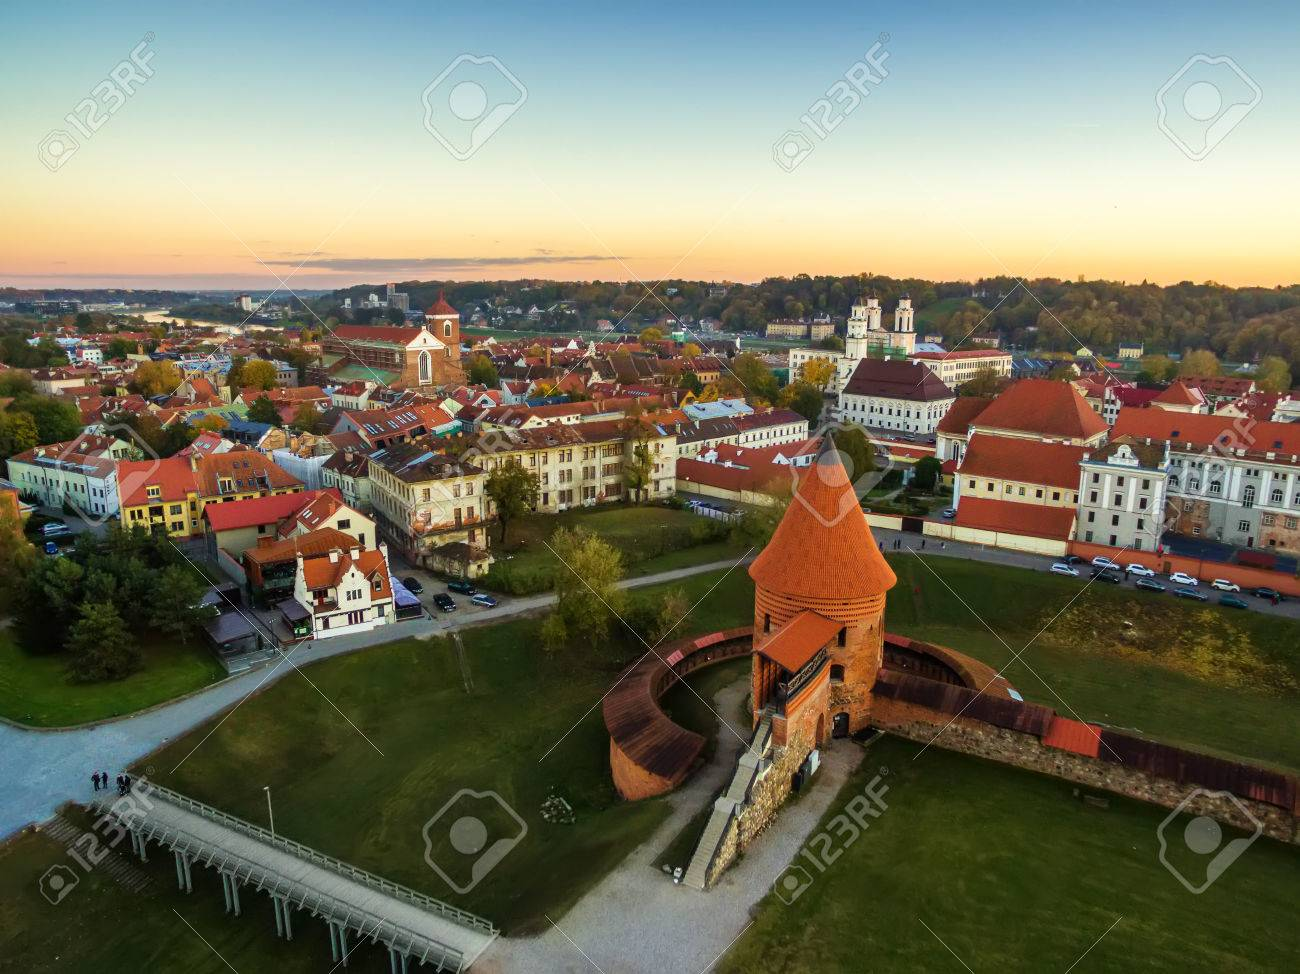 Kaunas, Lithuania: aerial top view of old town and castle in the autumn - 64783771